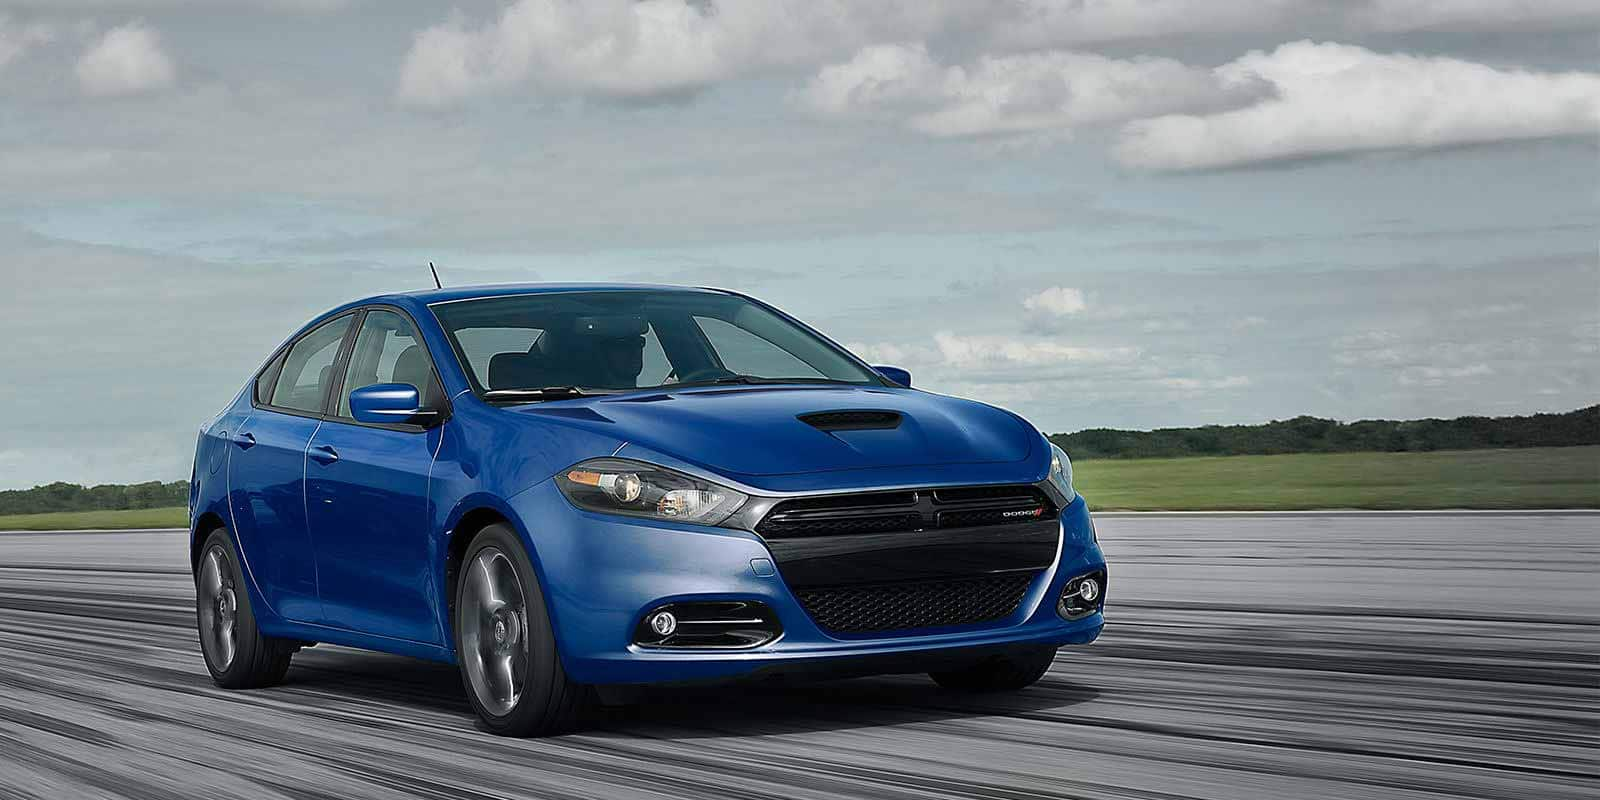 2016 Dodge Dart Accident Avoidance